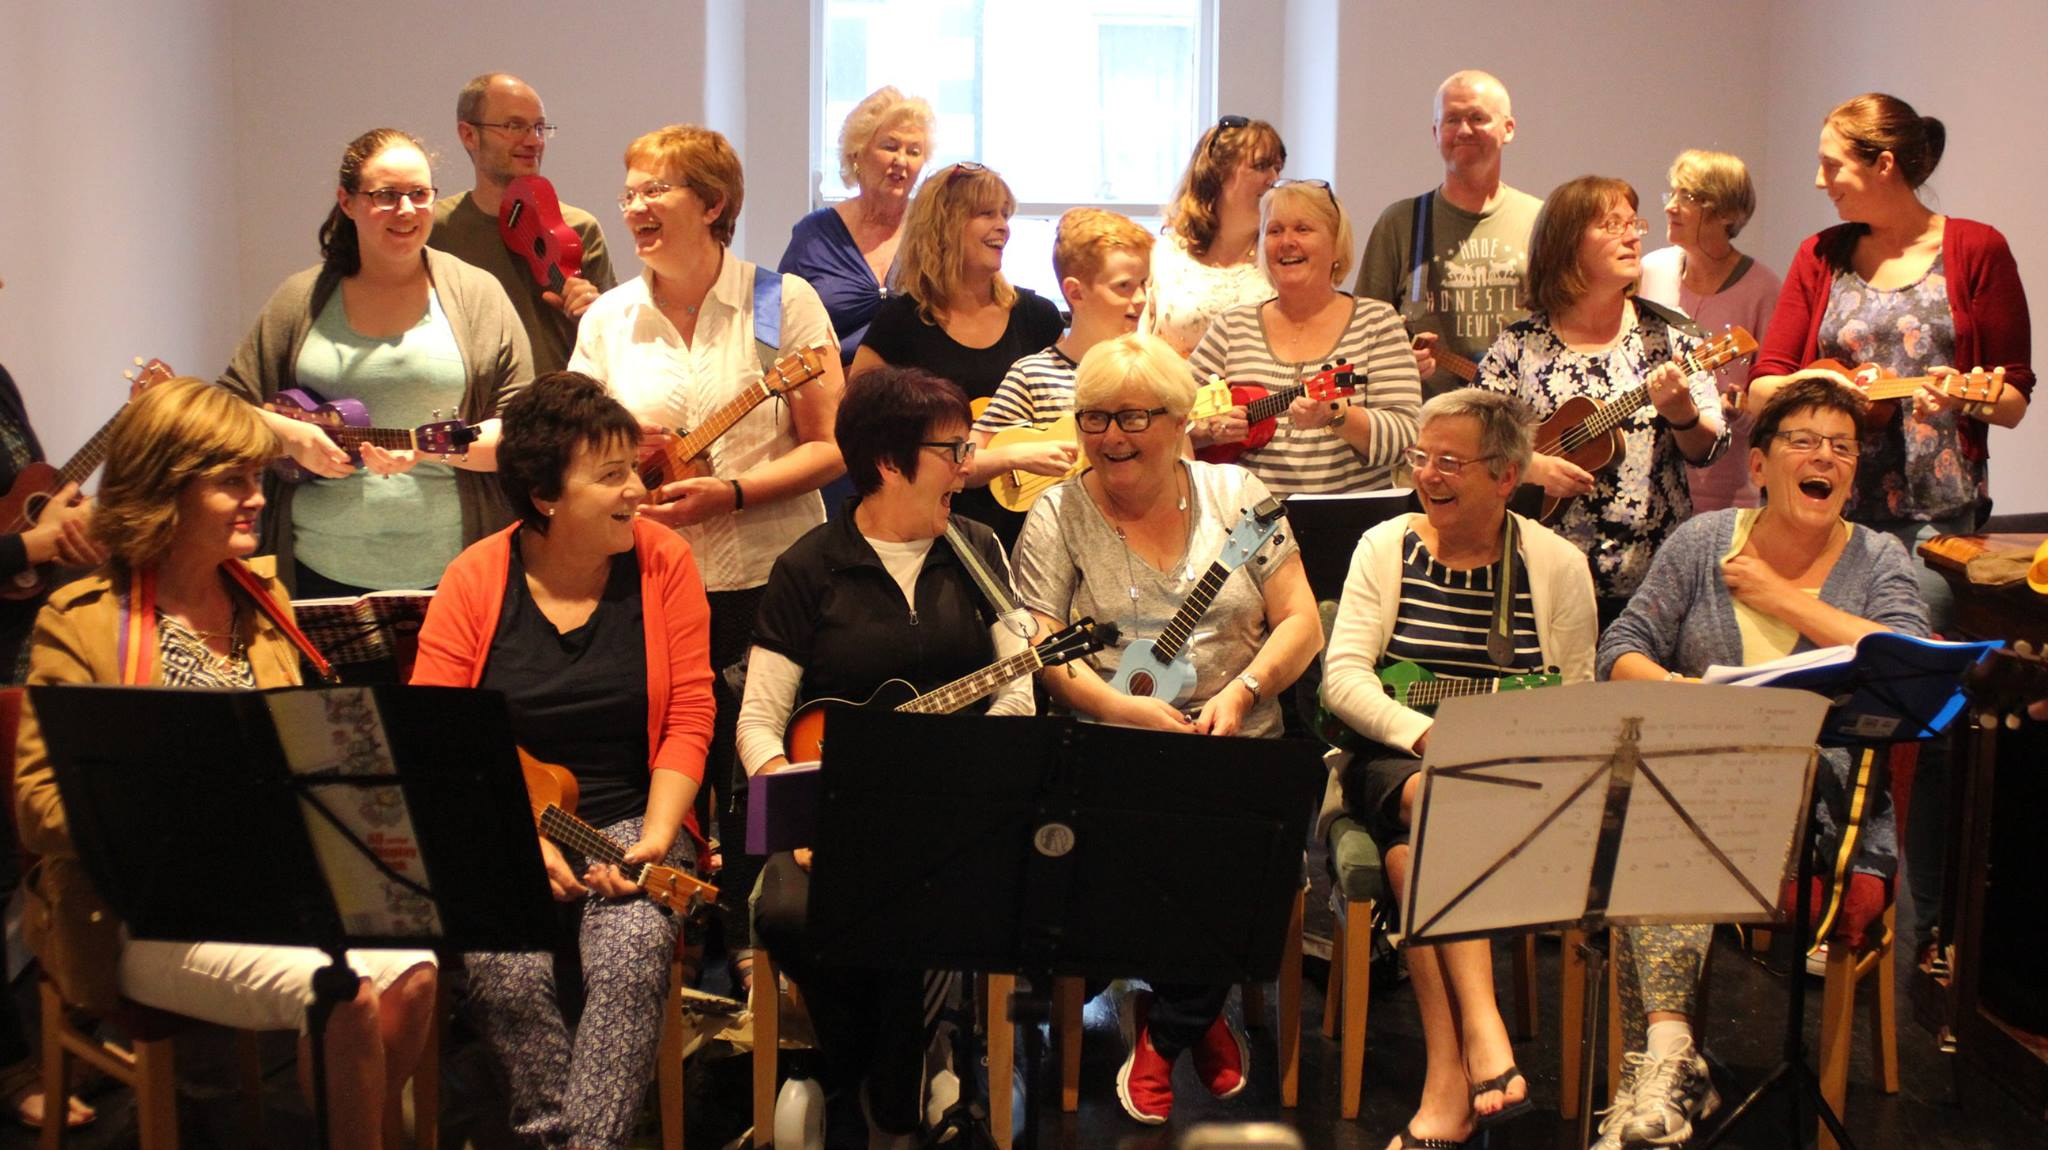 Arklow Ukulele Players Learning Laughing Friendship Men Women Kids Family Friendly Relaxed Ronan McCauley